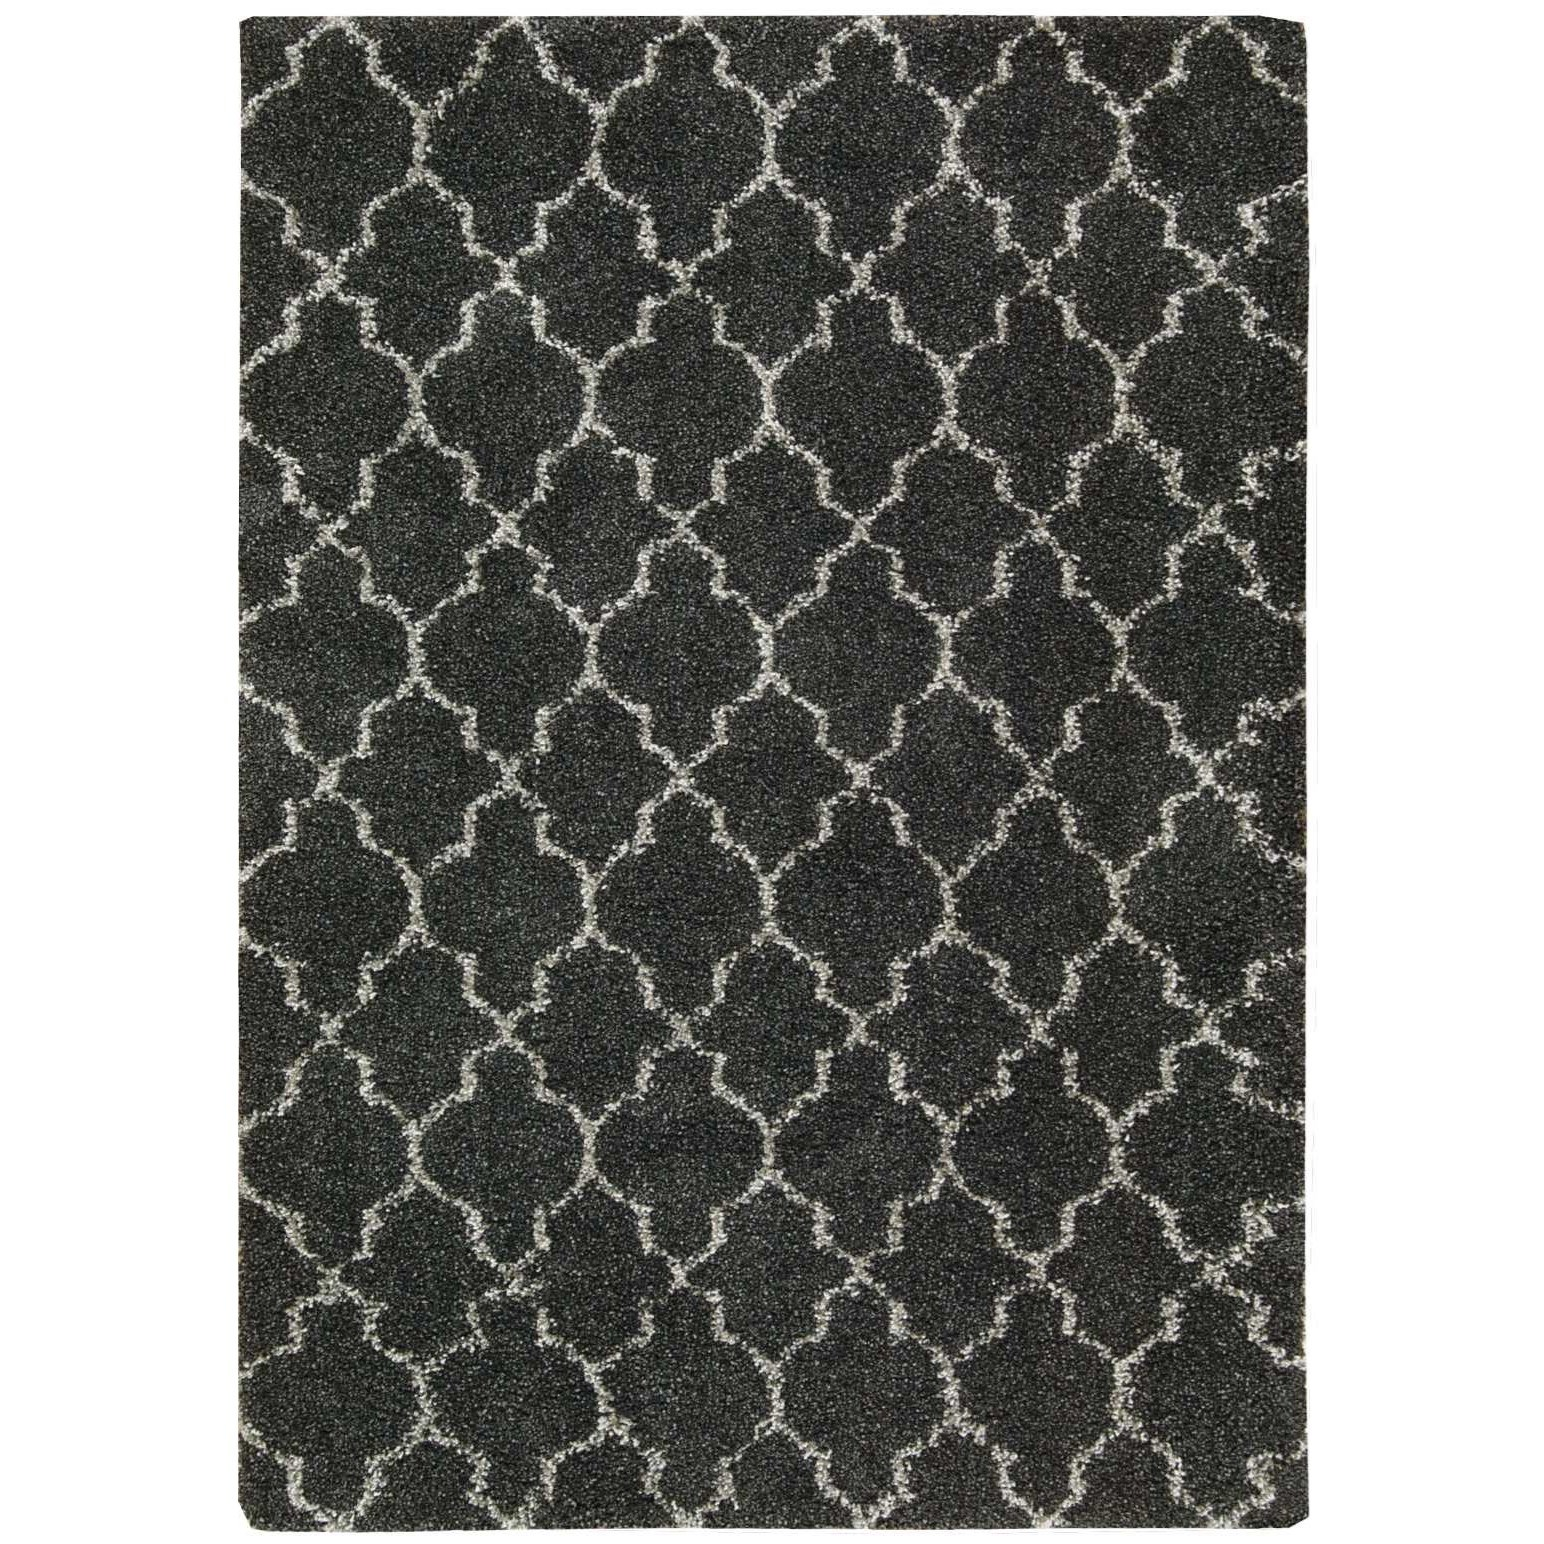 """Amore 3'11"""" x 5'11"""" Charcoal Rectangle Rug by Nourison at Sprintz Furniture"""